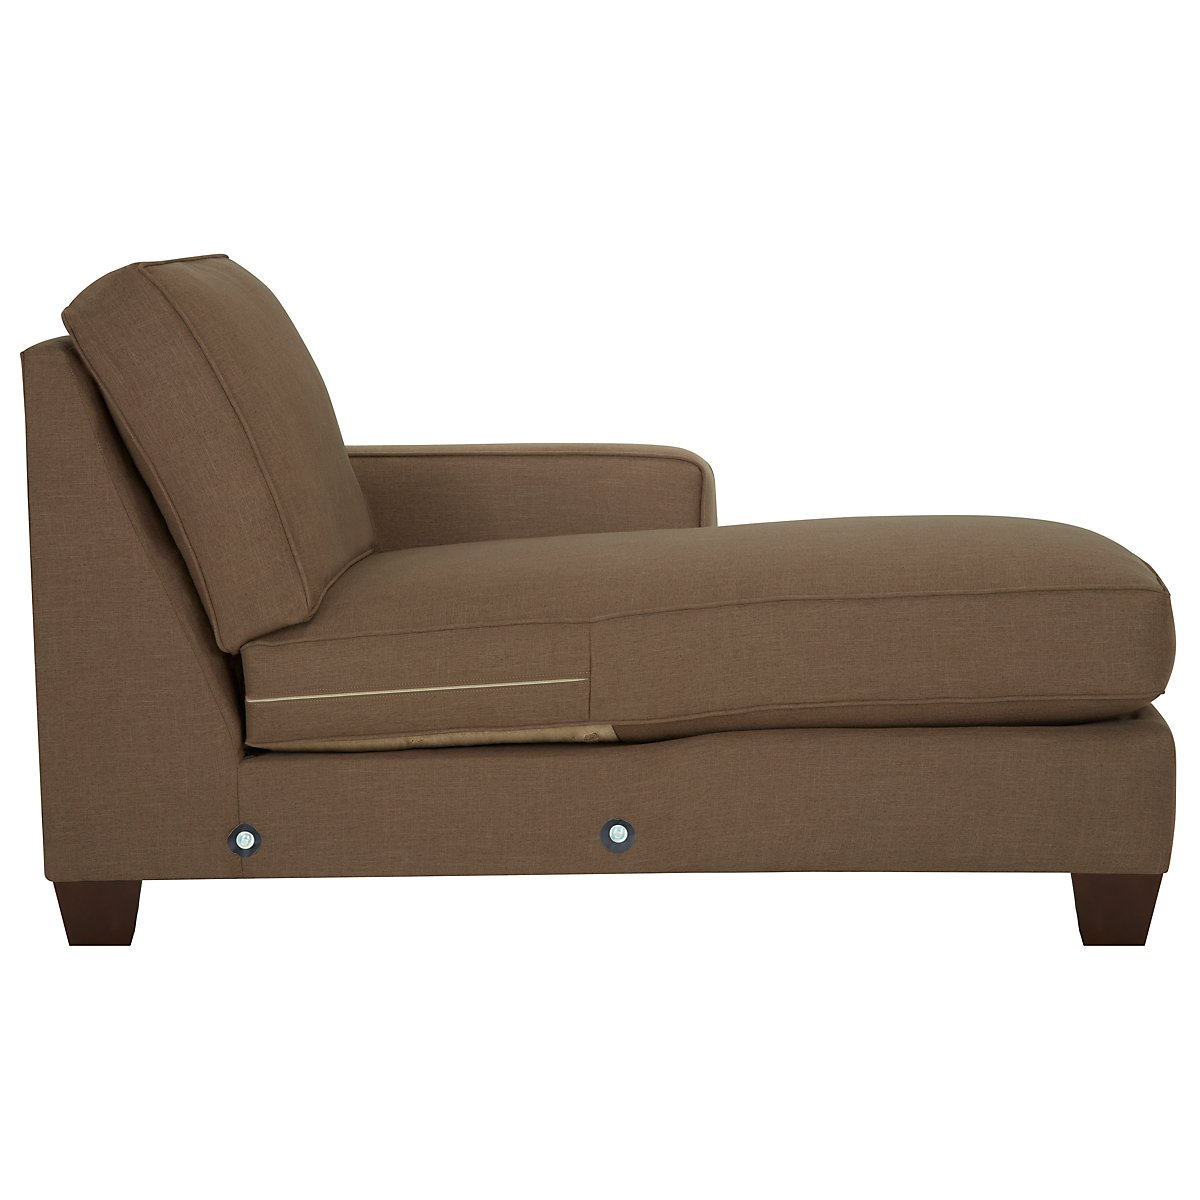 City furniture york dk brown fabric small right chaise for Brown sectional with chaise